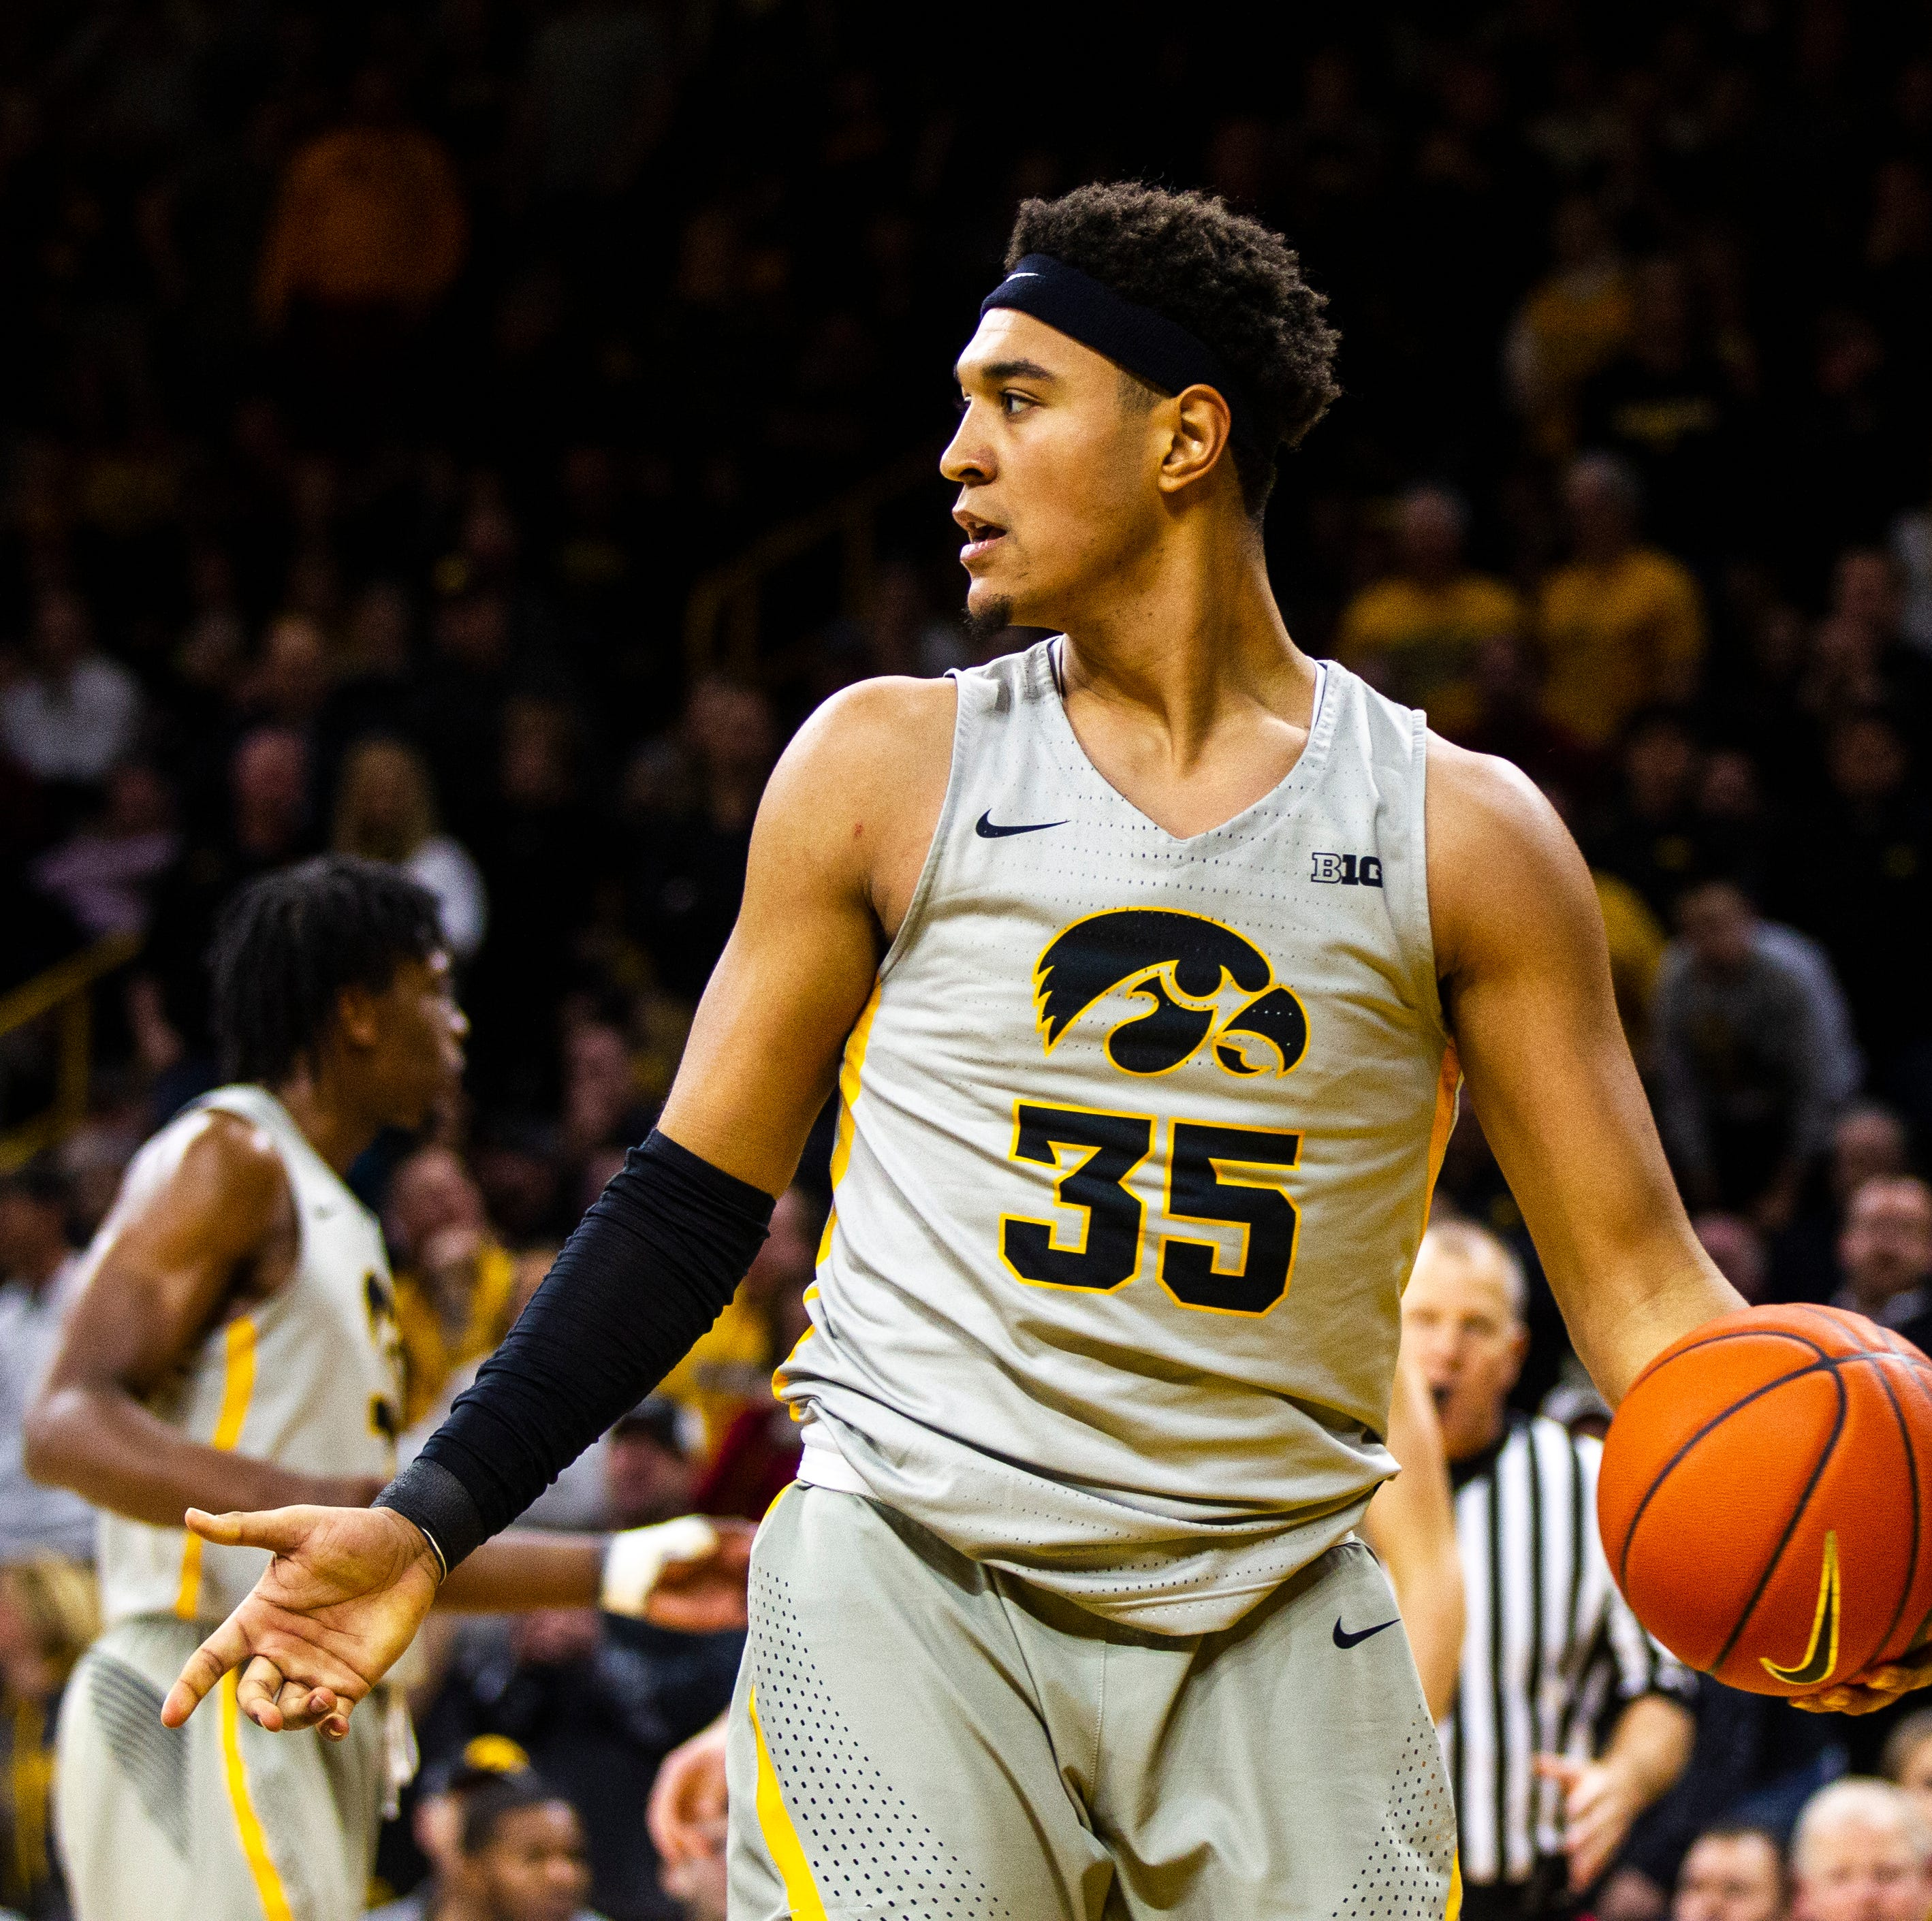 Iowa basketball: Cordell Pemsl out for Hy-Vee Classic